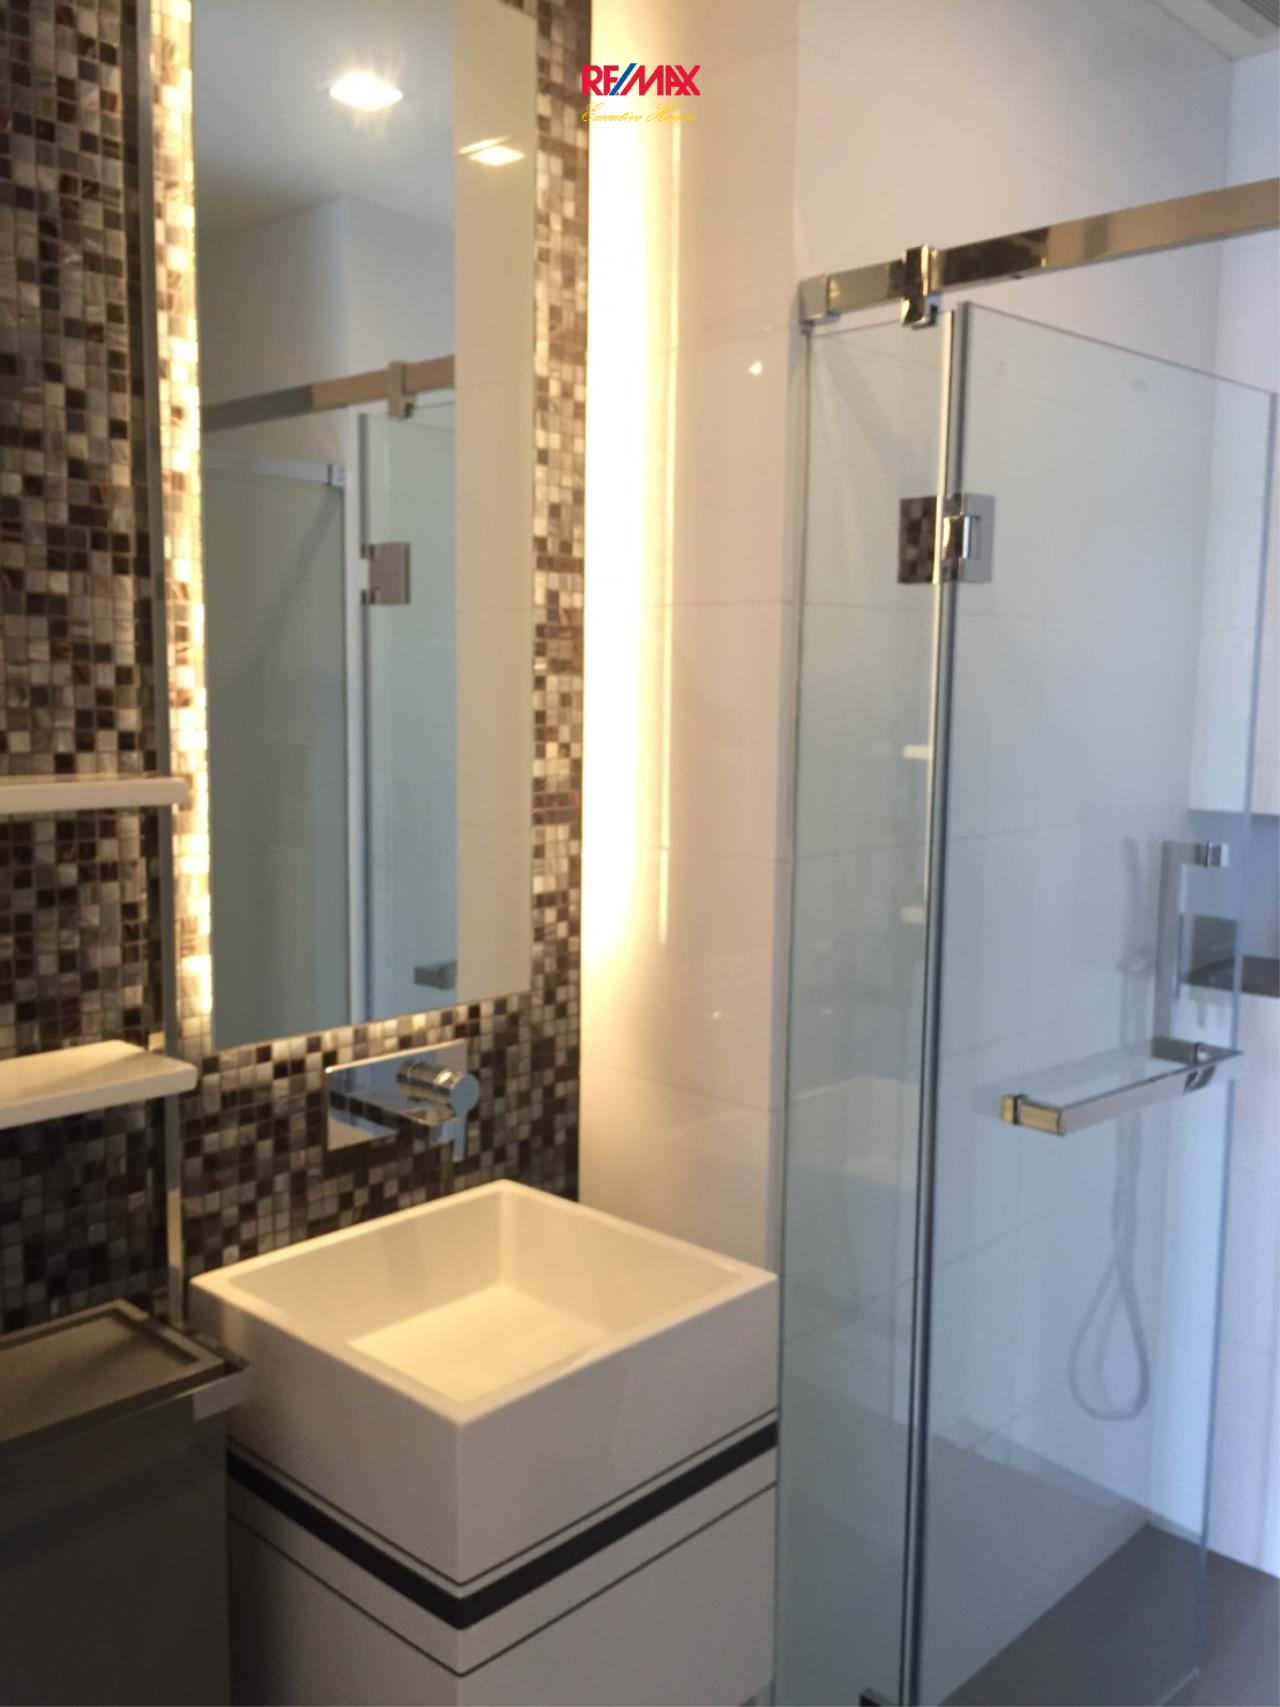 RE/MAX Executive Homes Agency's Spacious 1 Bedroom for Sale The Room Sathorn Pan 6